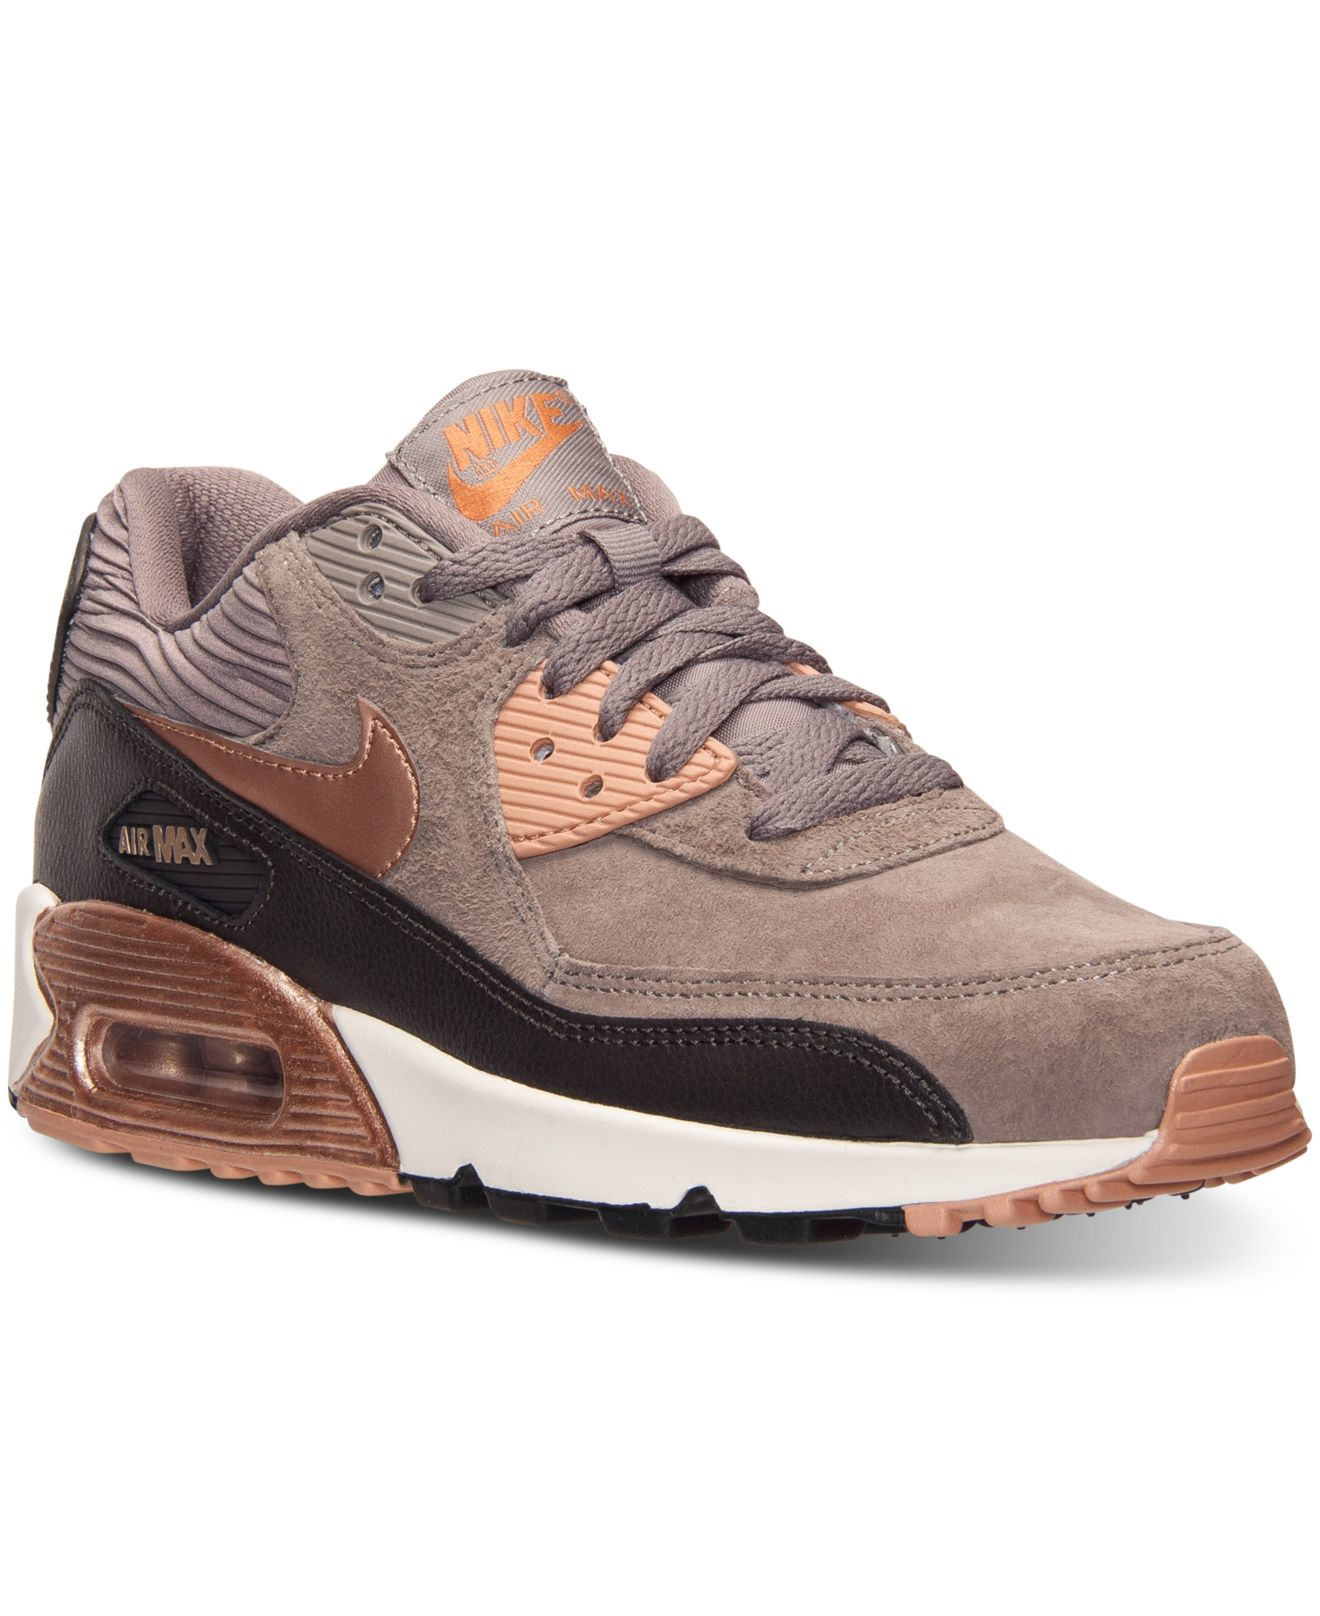 huge discount a7046 4236a Previously sold at Macy s · Women s Nike Air Max 90 ...